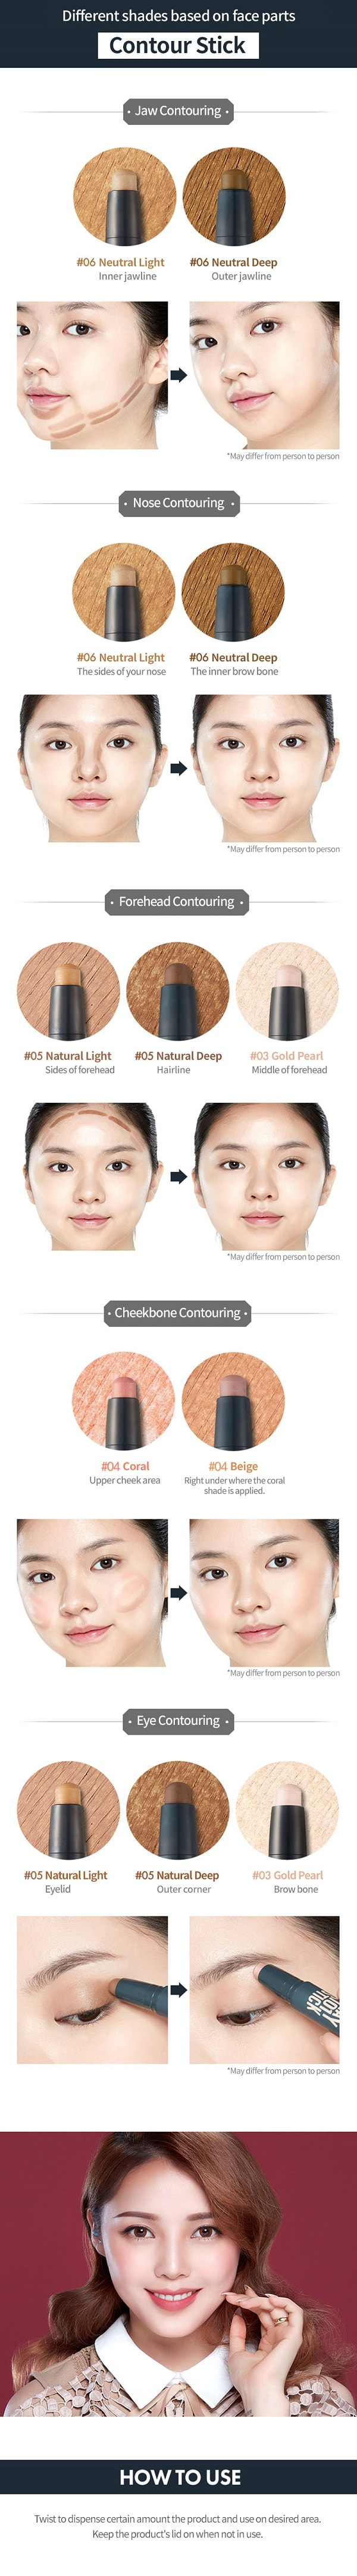 Etude House Stick 101 Contour Duo